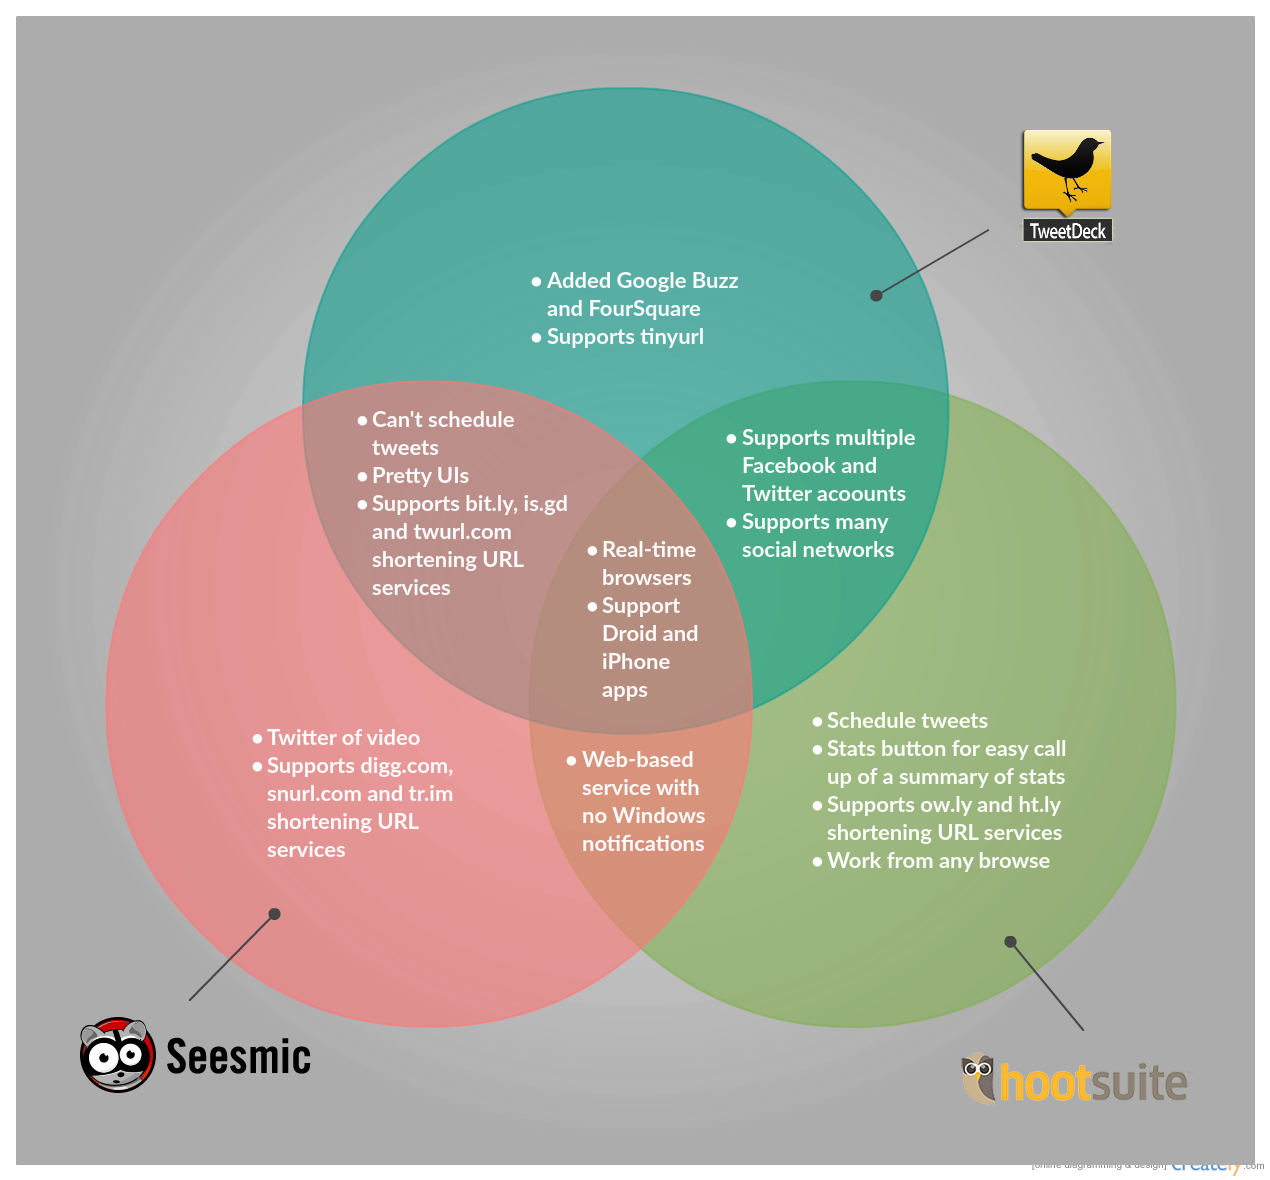 Venn diagram templates editable online or download for free venn diagram template on different twitter tools ccuart Choice Image